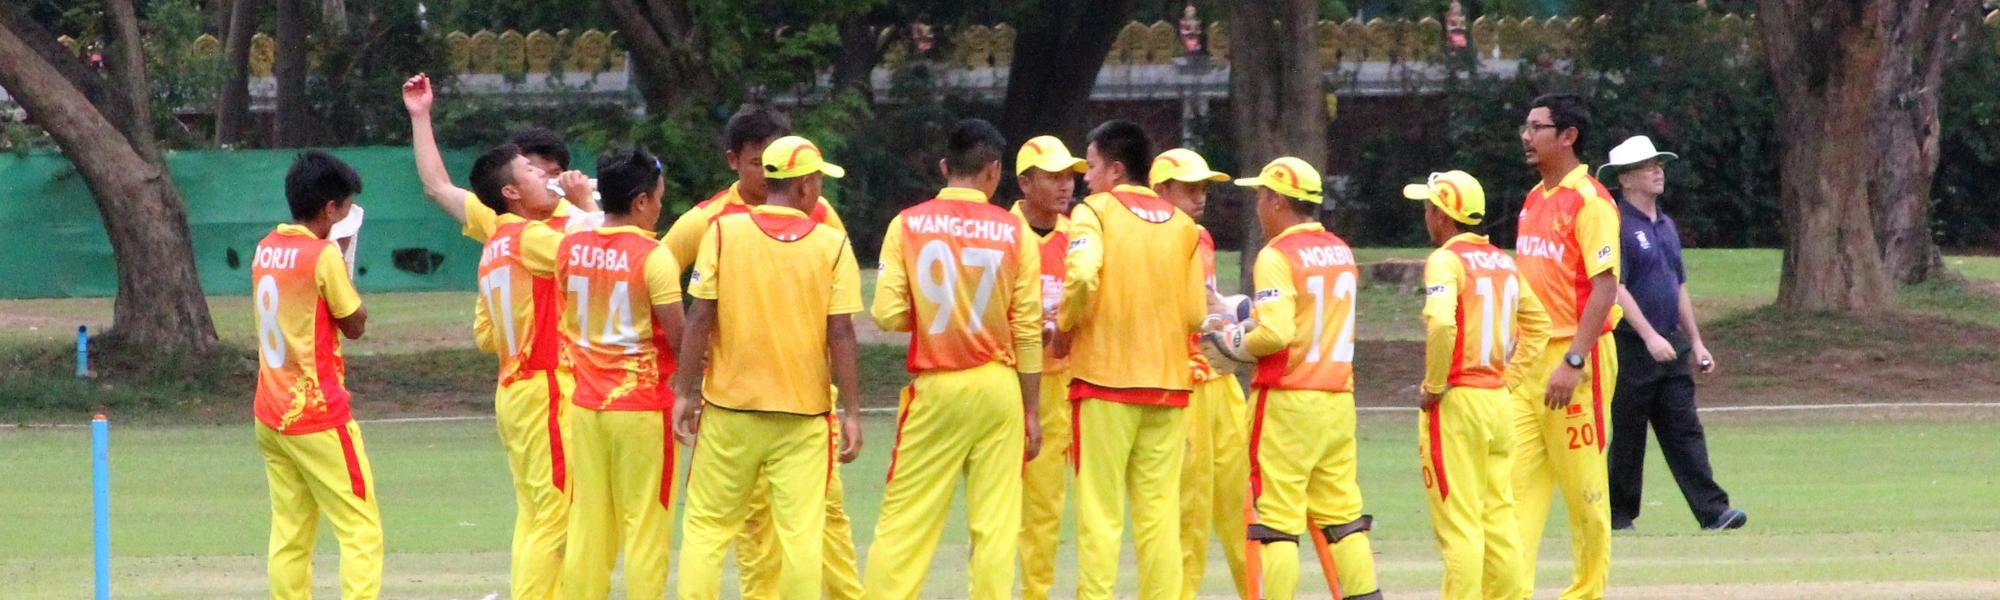 Teams during the warm-up matches of the World Cricket League Asia Qualifier